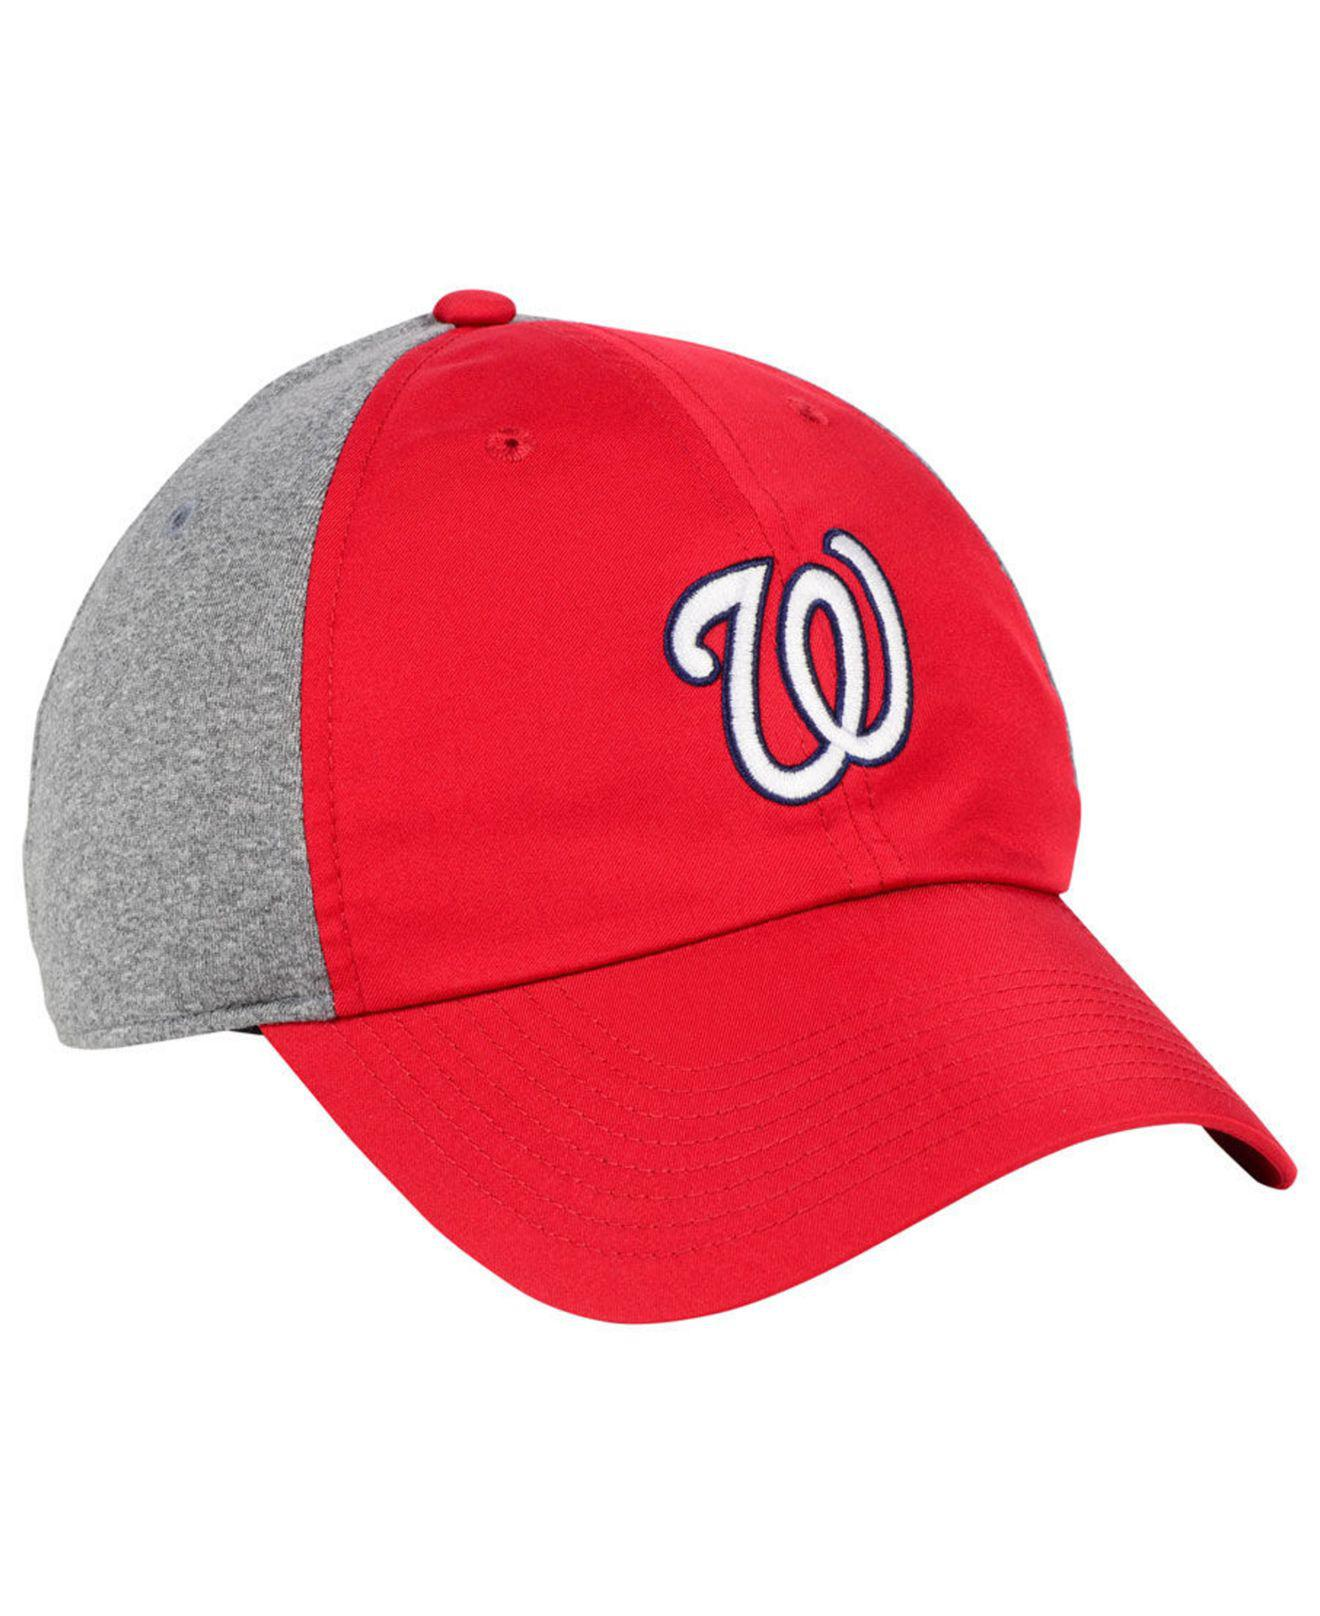 a092224e9e2a9 ... switzerland nike red washington nationals new day legend cap for men  lyst. view fullscreen 7e5ad